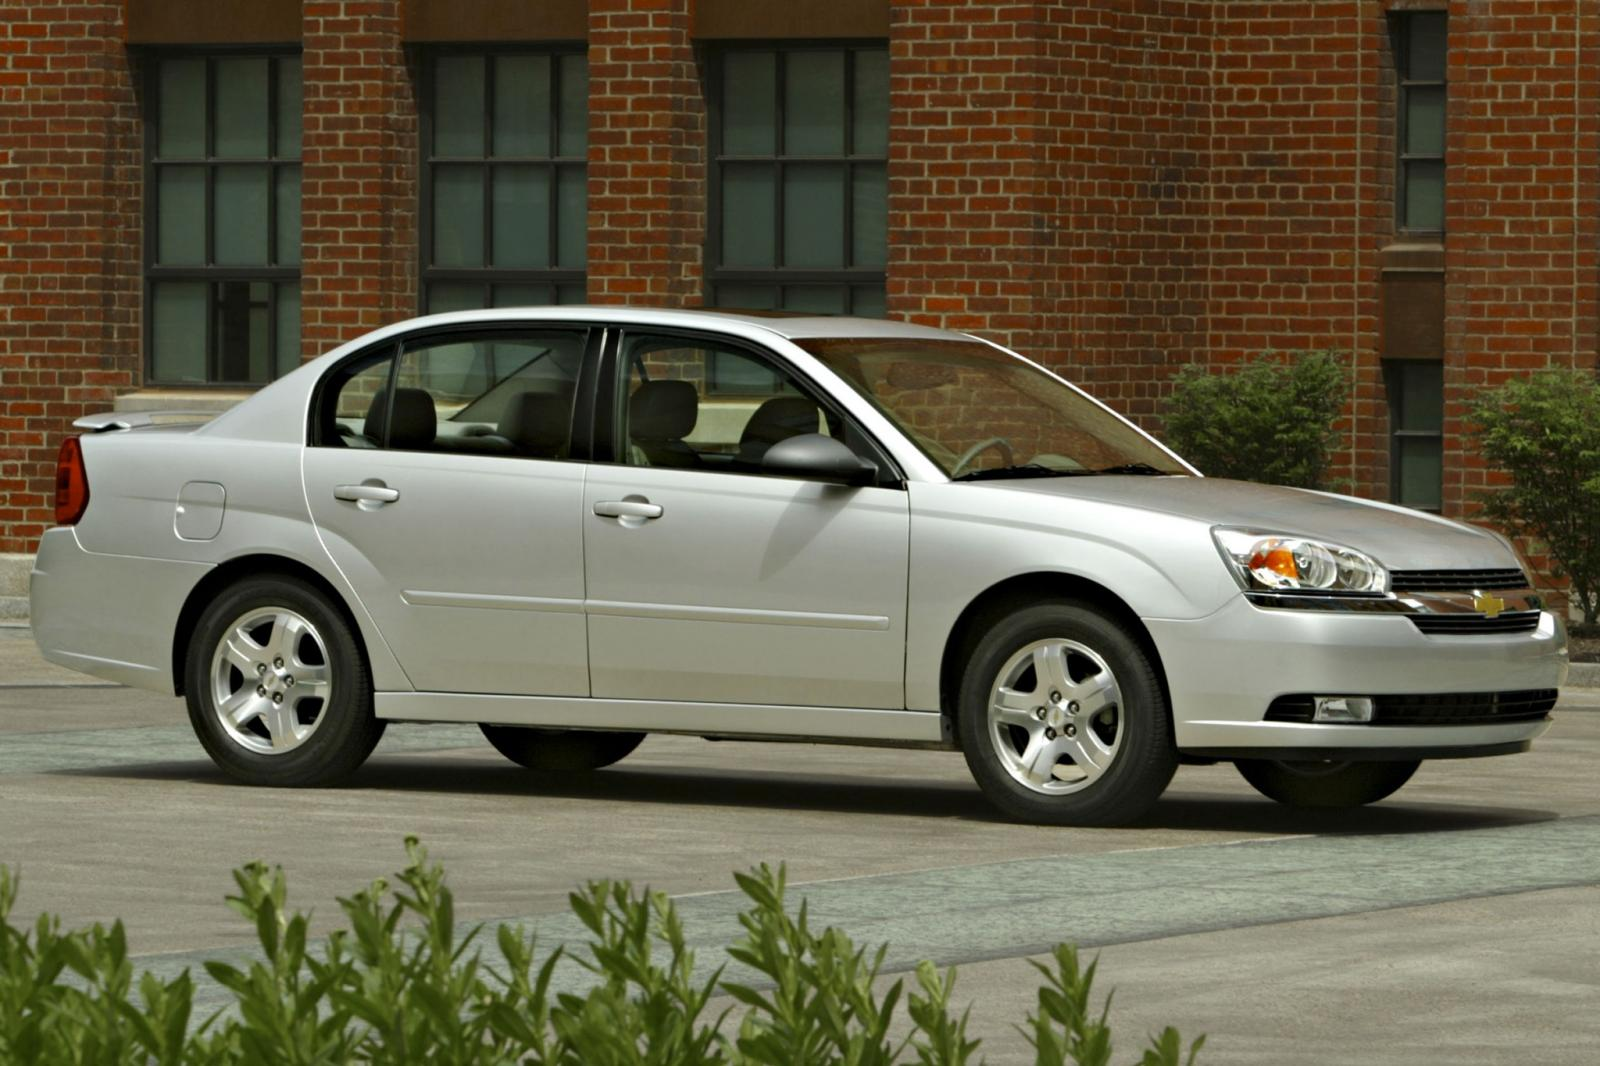 2007 chevrolet malibu information and photos zombiedrive. Cars Review. Best American Auto & Cars Review